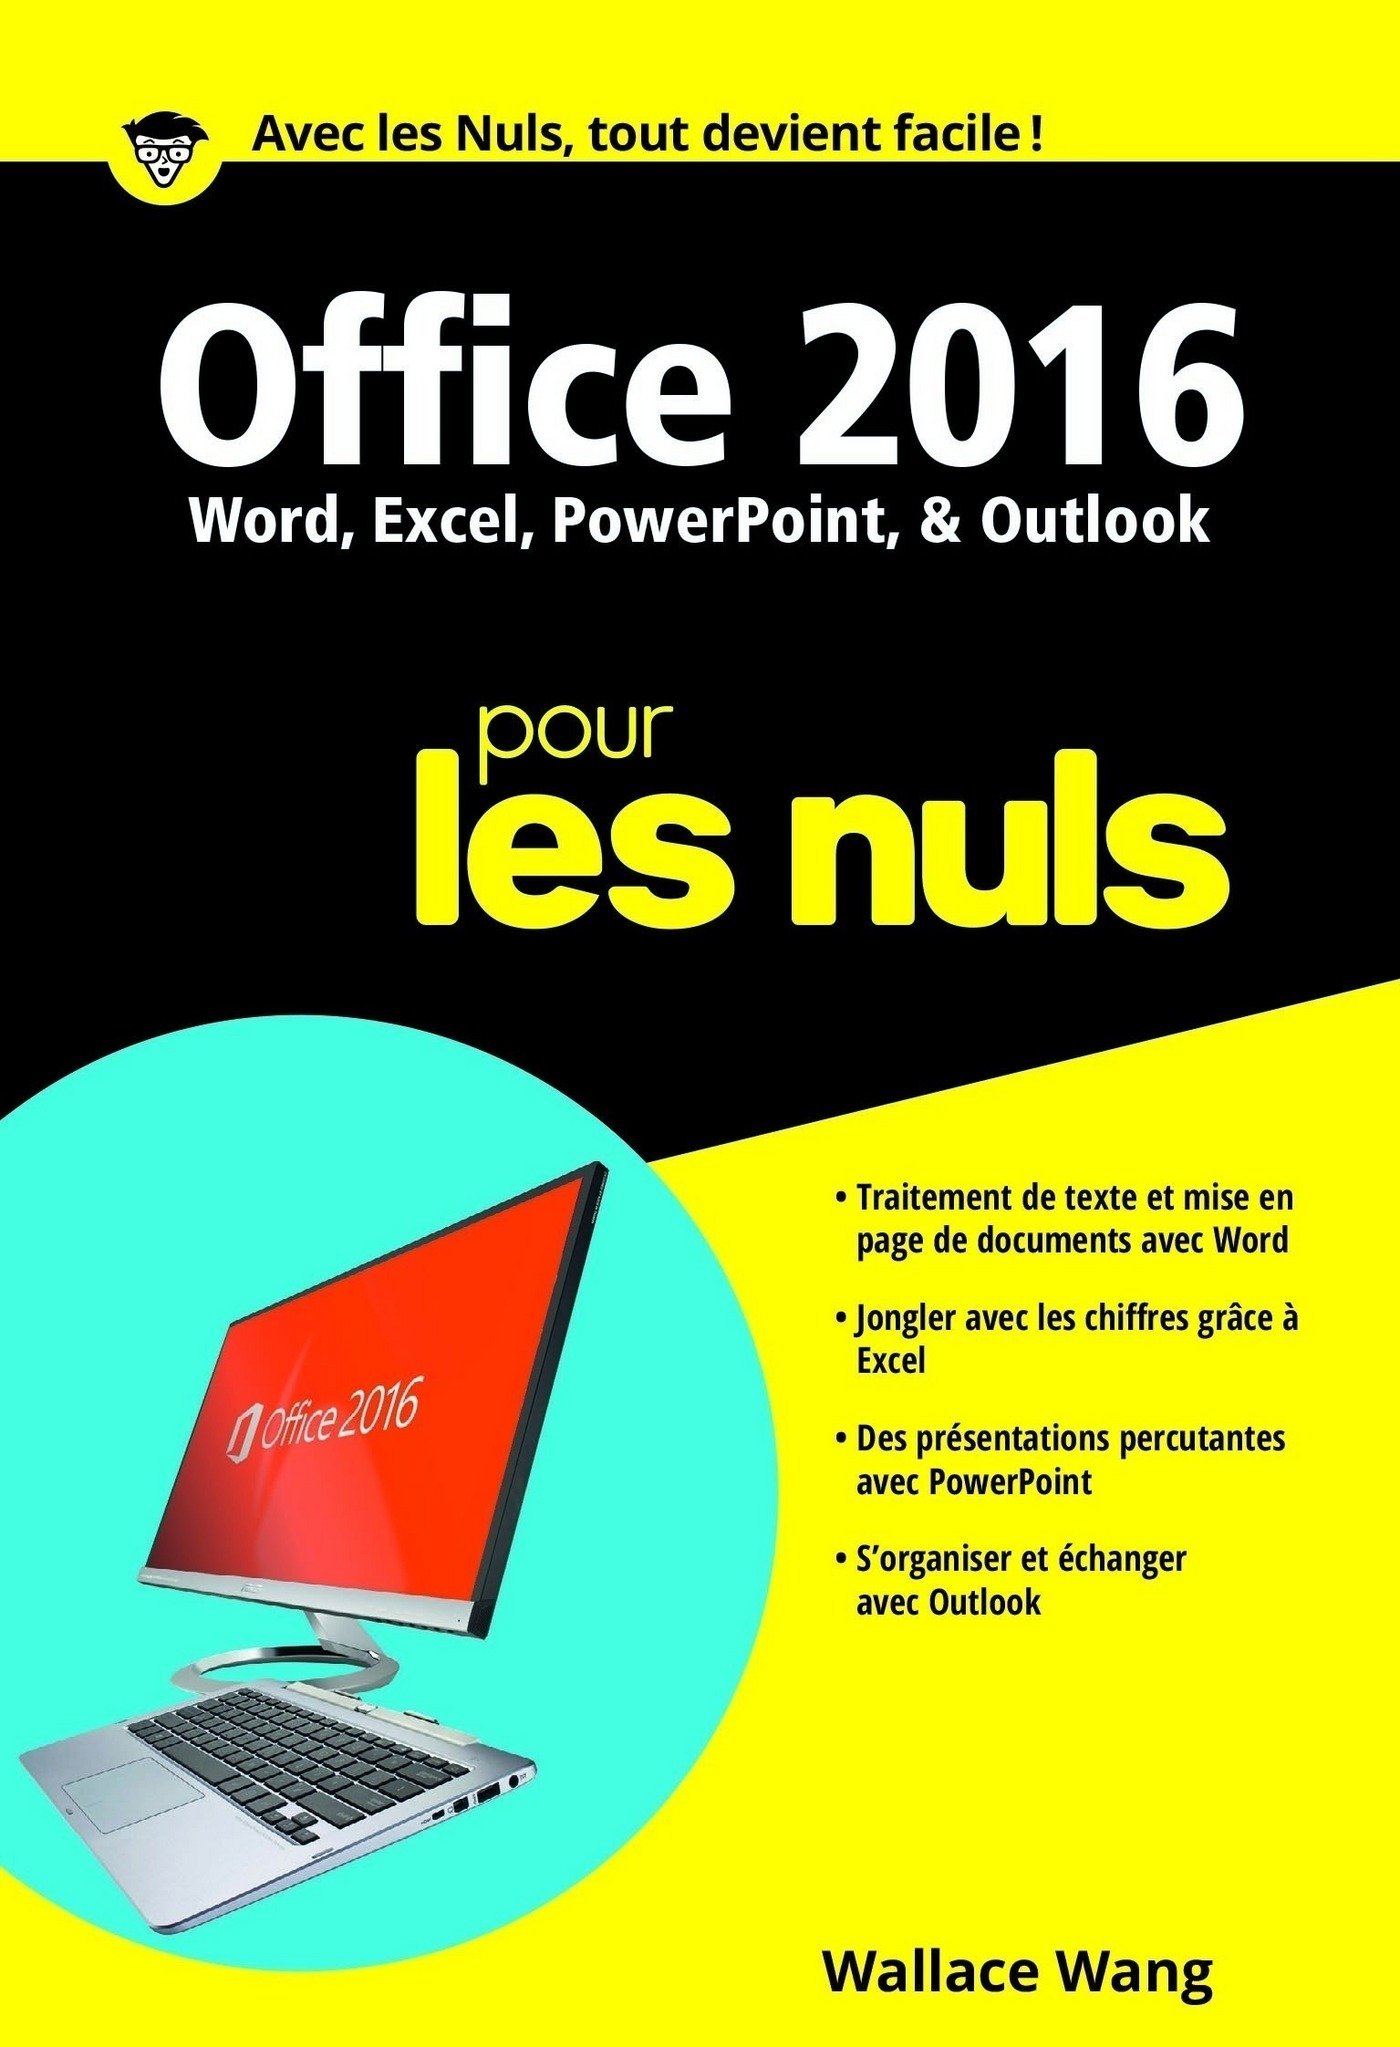 Vignette du livre Office 2016 pour les nuls : Word, Excel, PowerPoint, Outlook - Wallace Wang